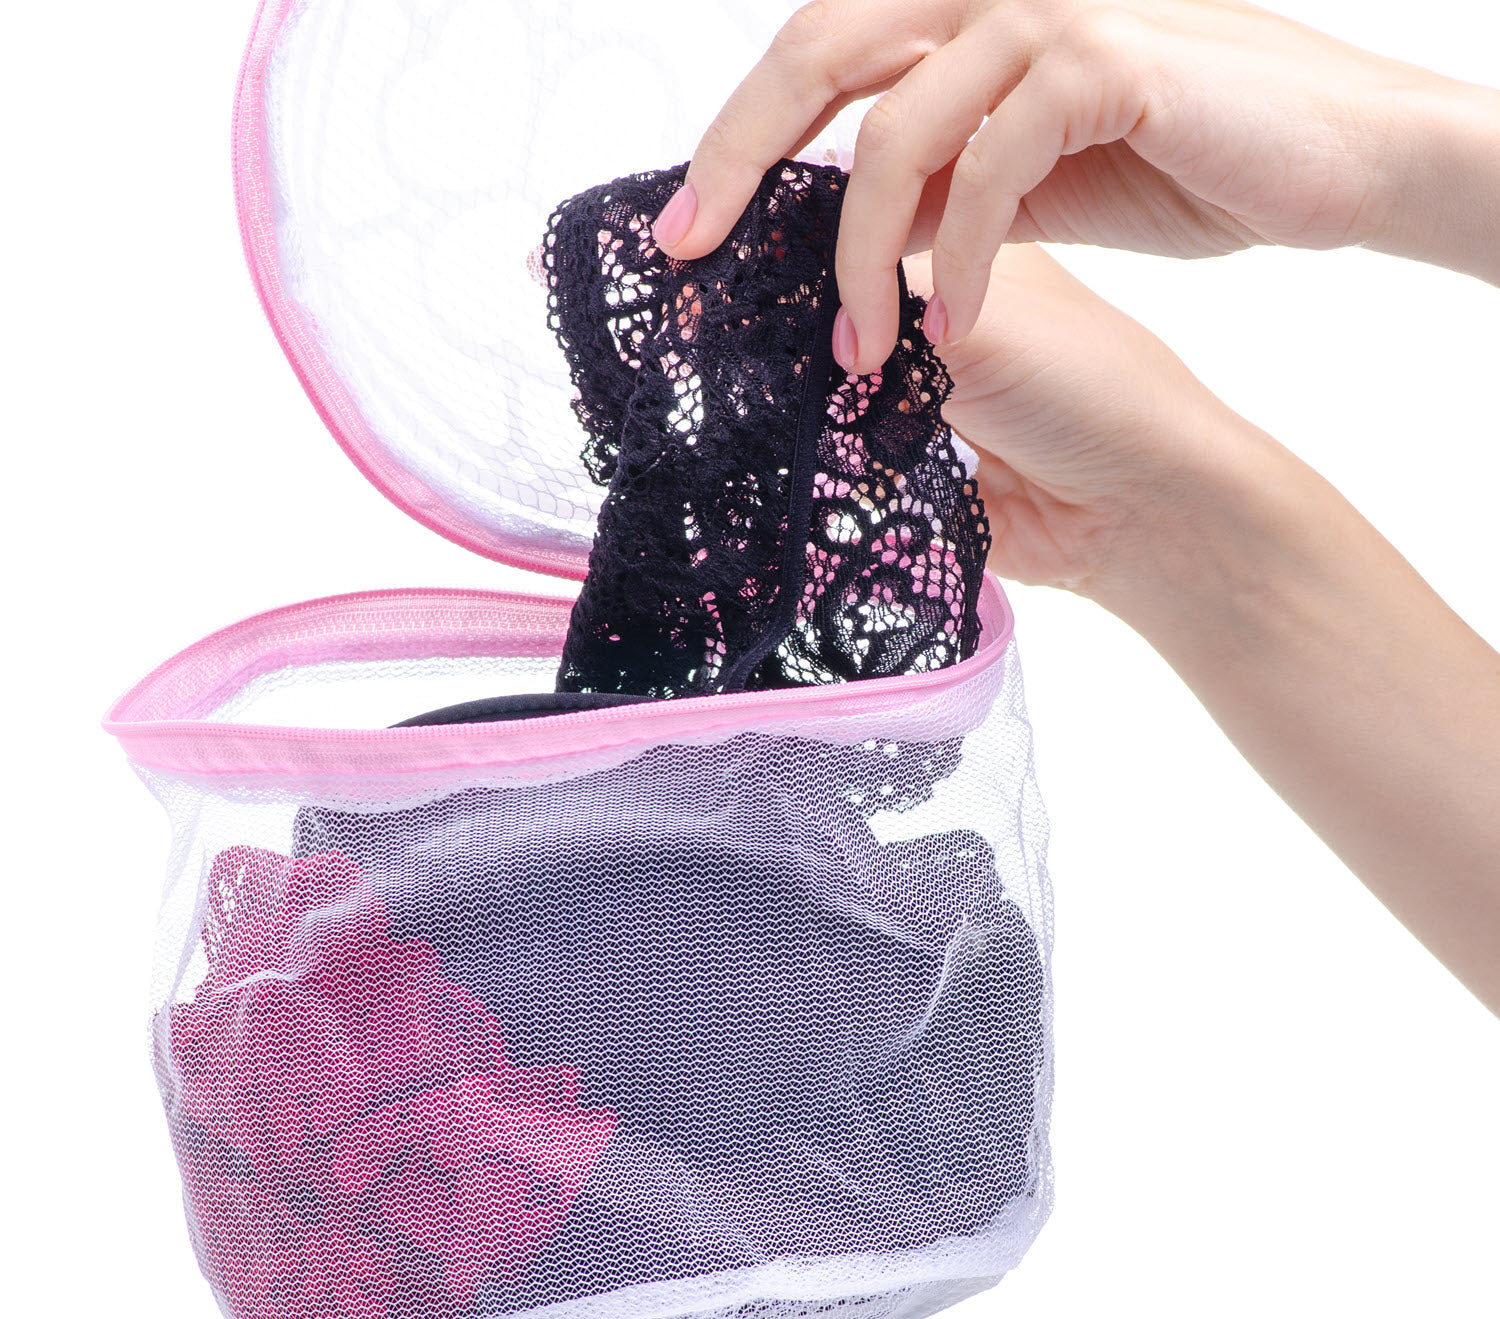 Use a mesh wash bag to protect your delicate clothing